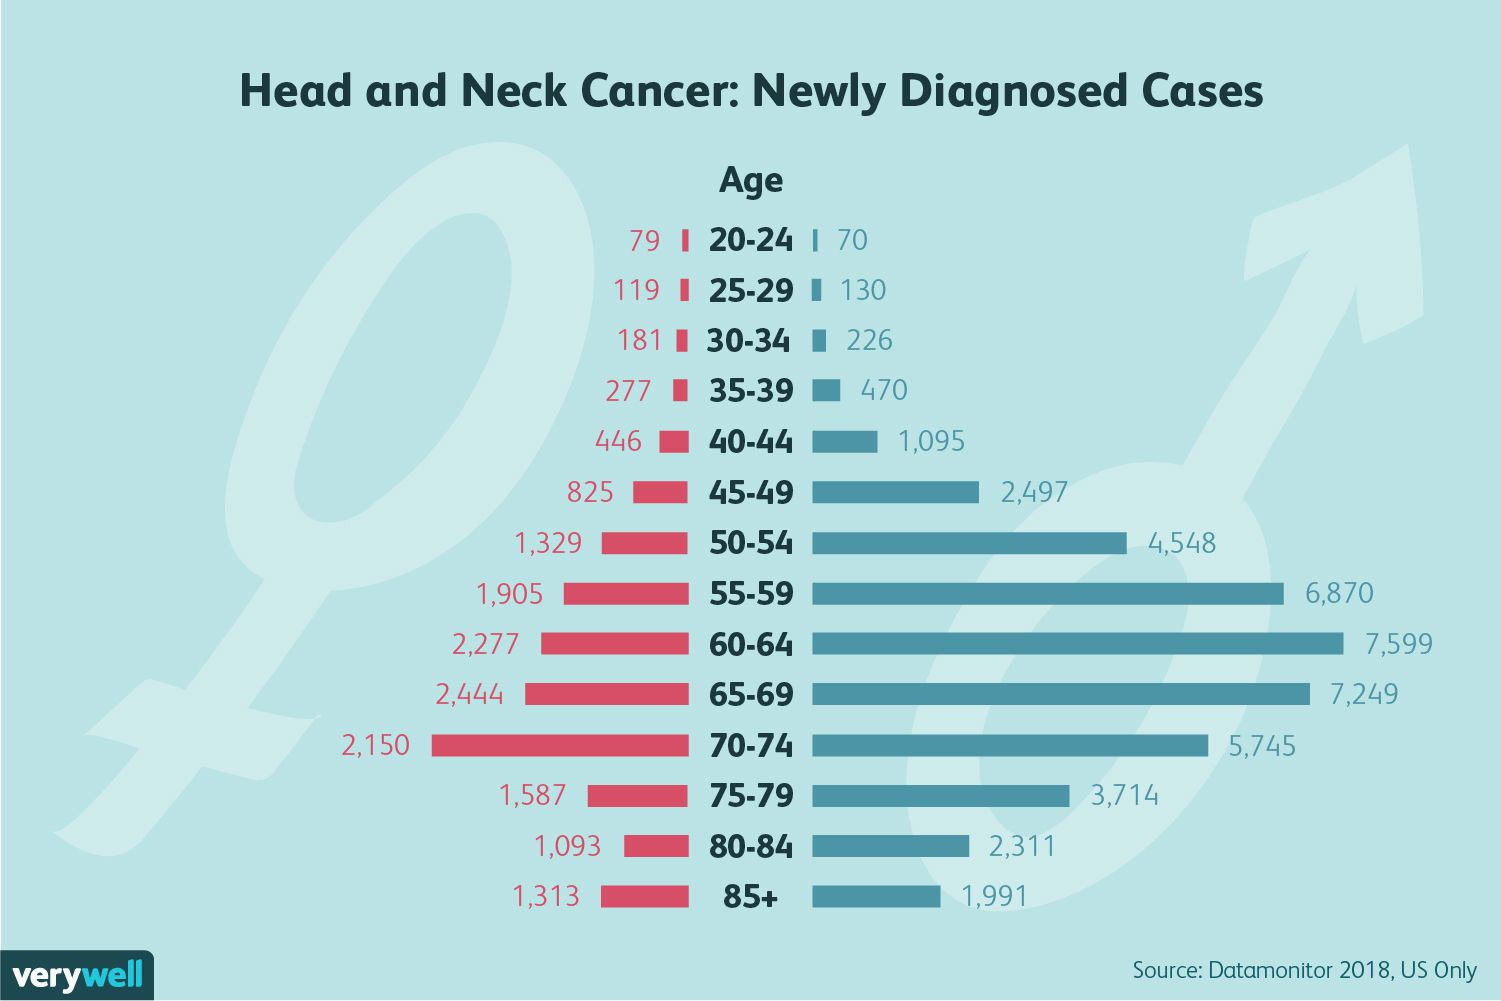 head and neck cancer: newly diagnosed cases